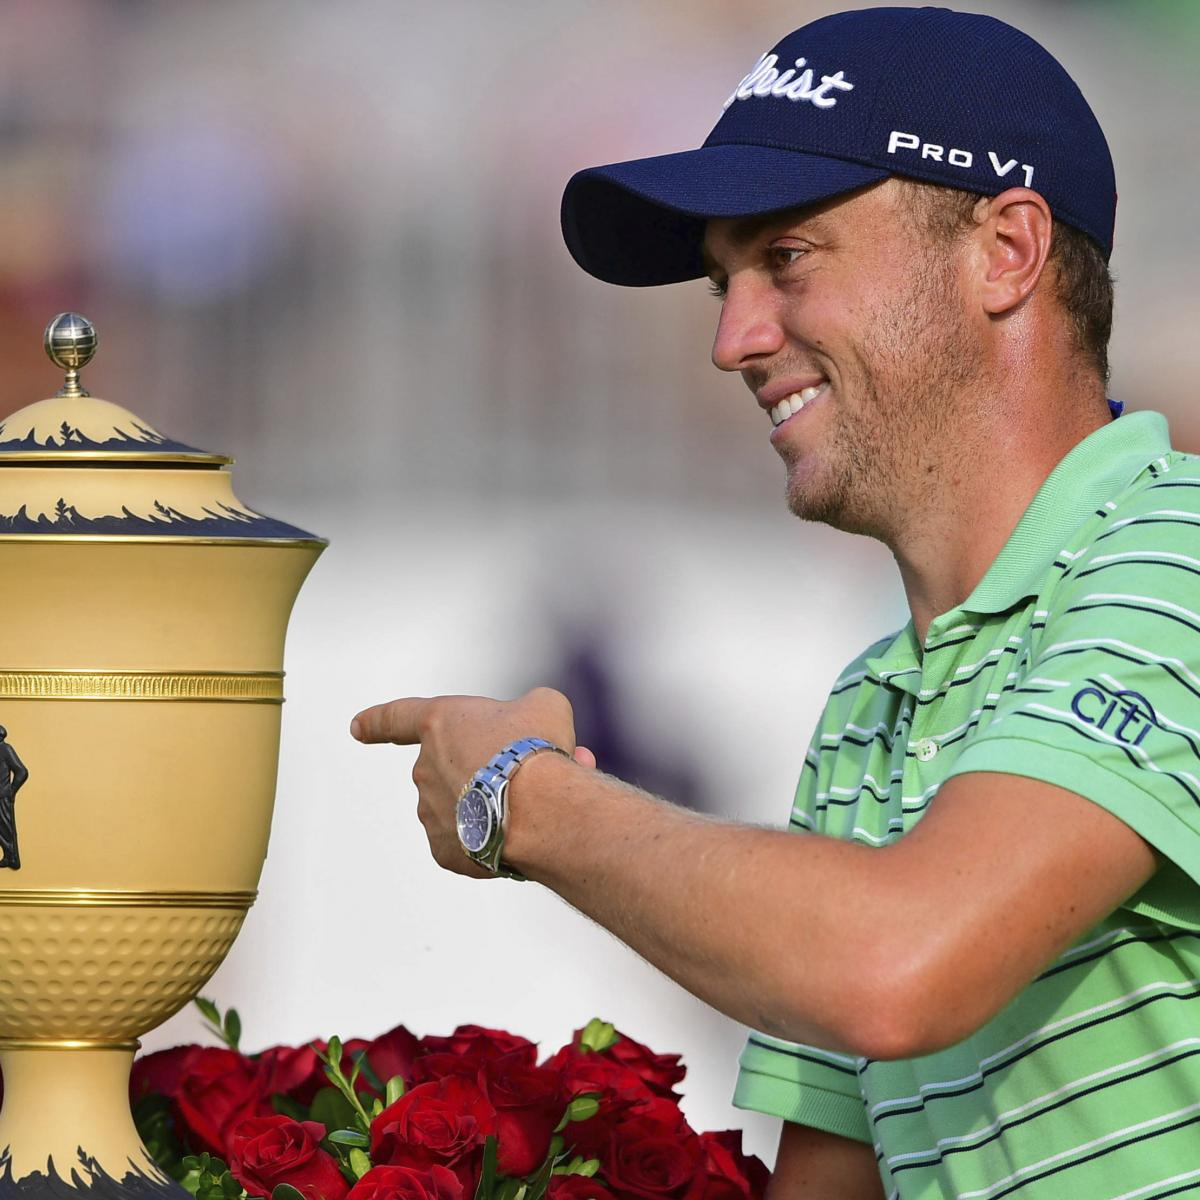 PGA Championship 2018: Tee Times, Date, TV Schedule and Prize Money